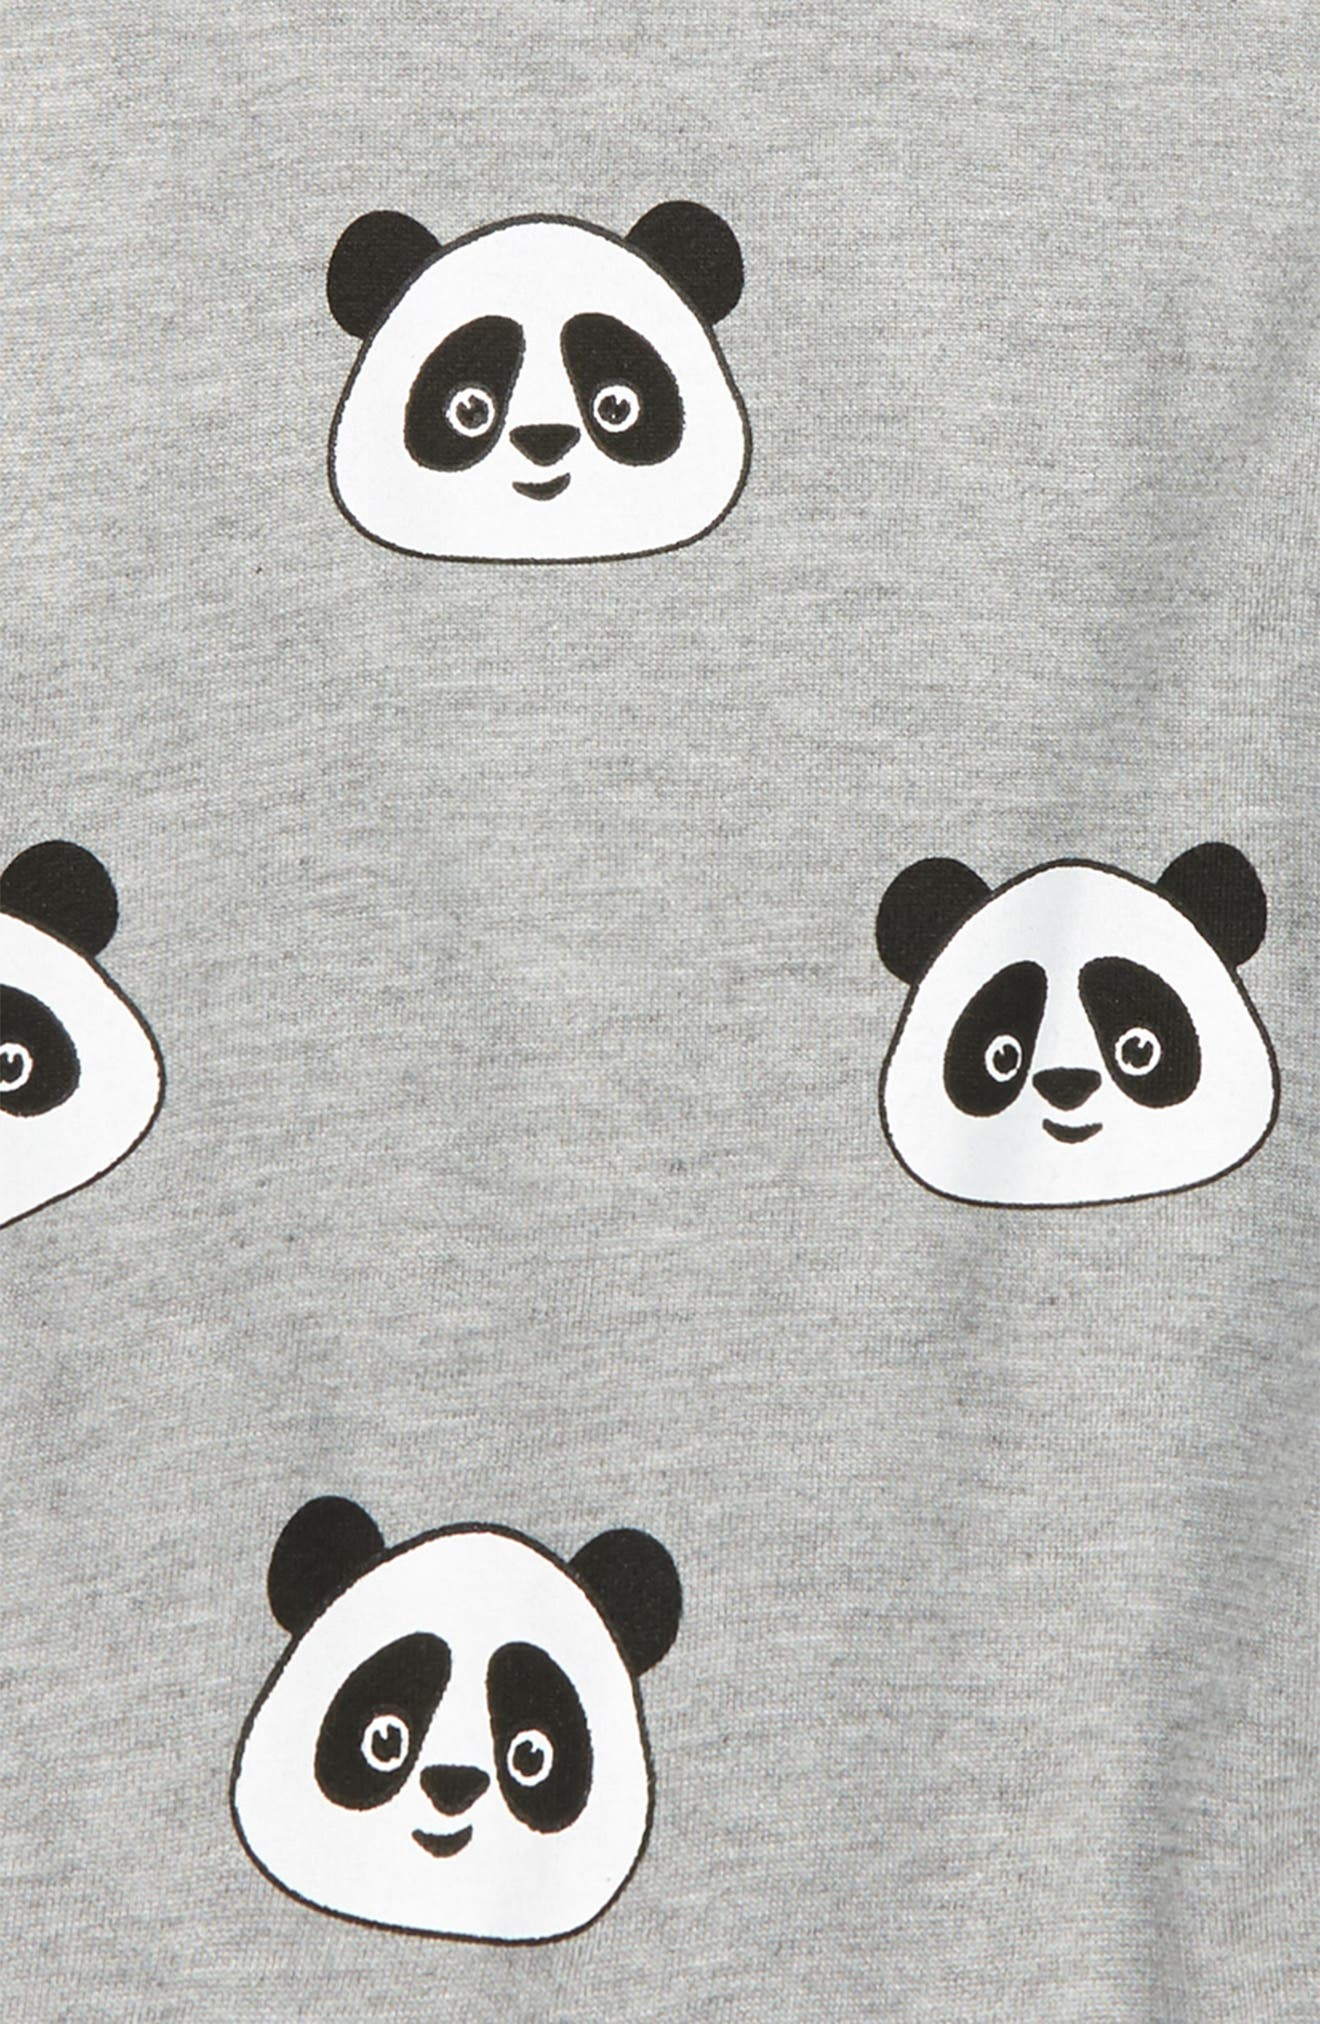 All Over Panda Sweatshirt,                             Alternate thumbnail 2, color,                             Panda Grey